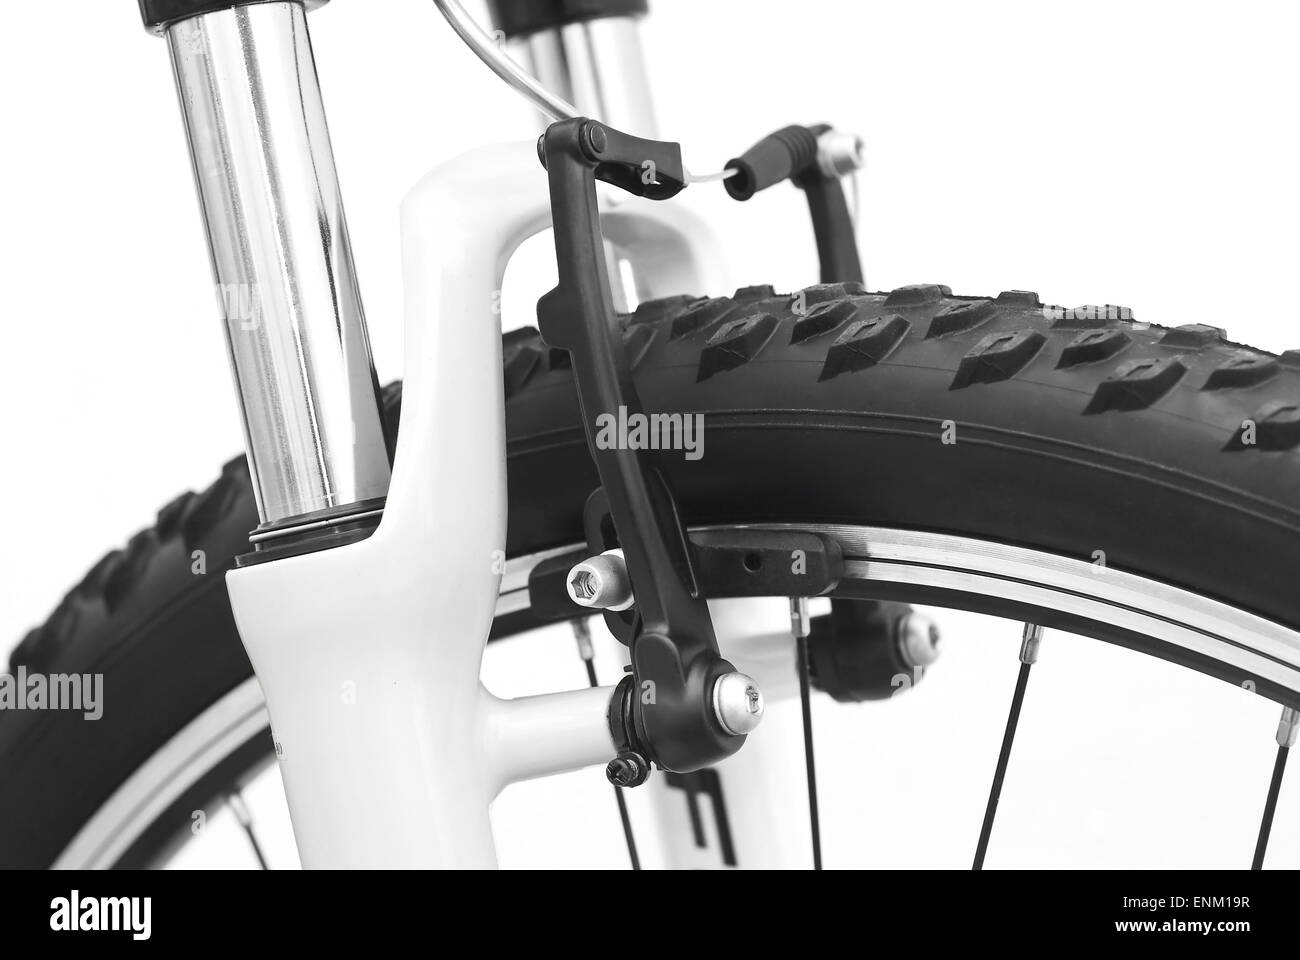 bicycle front v brake detail - Stock Image